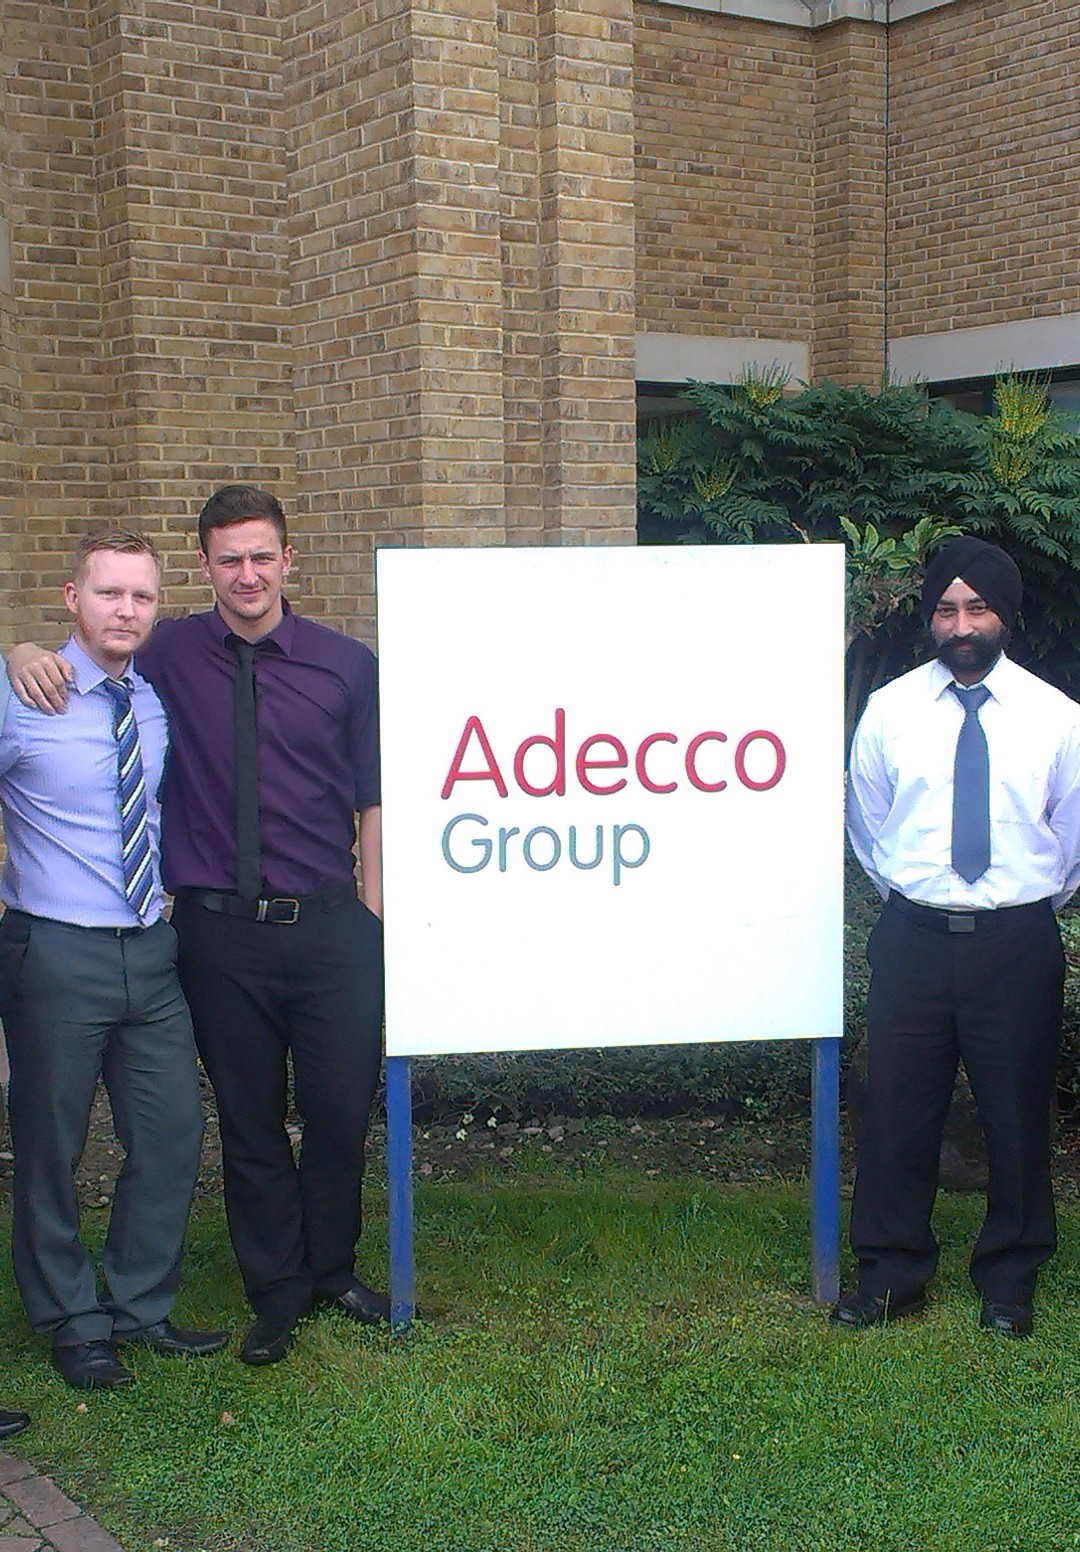 Rimilia working in Partnership with renowned recruitment provider Adecco to increase efficiency of Accounts Receivable process